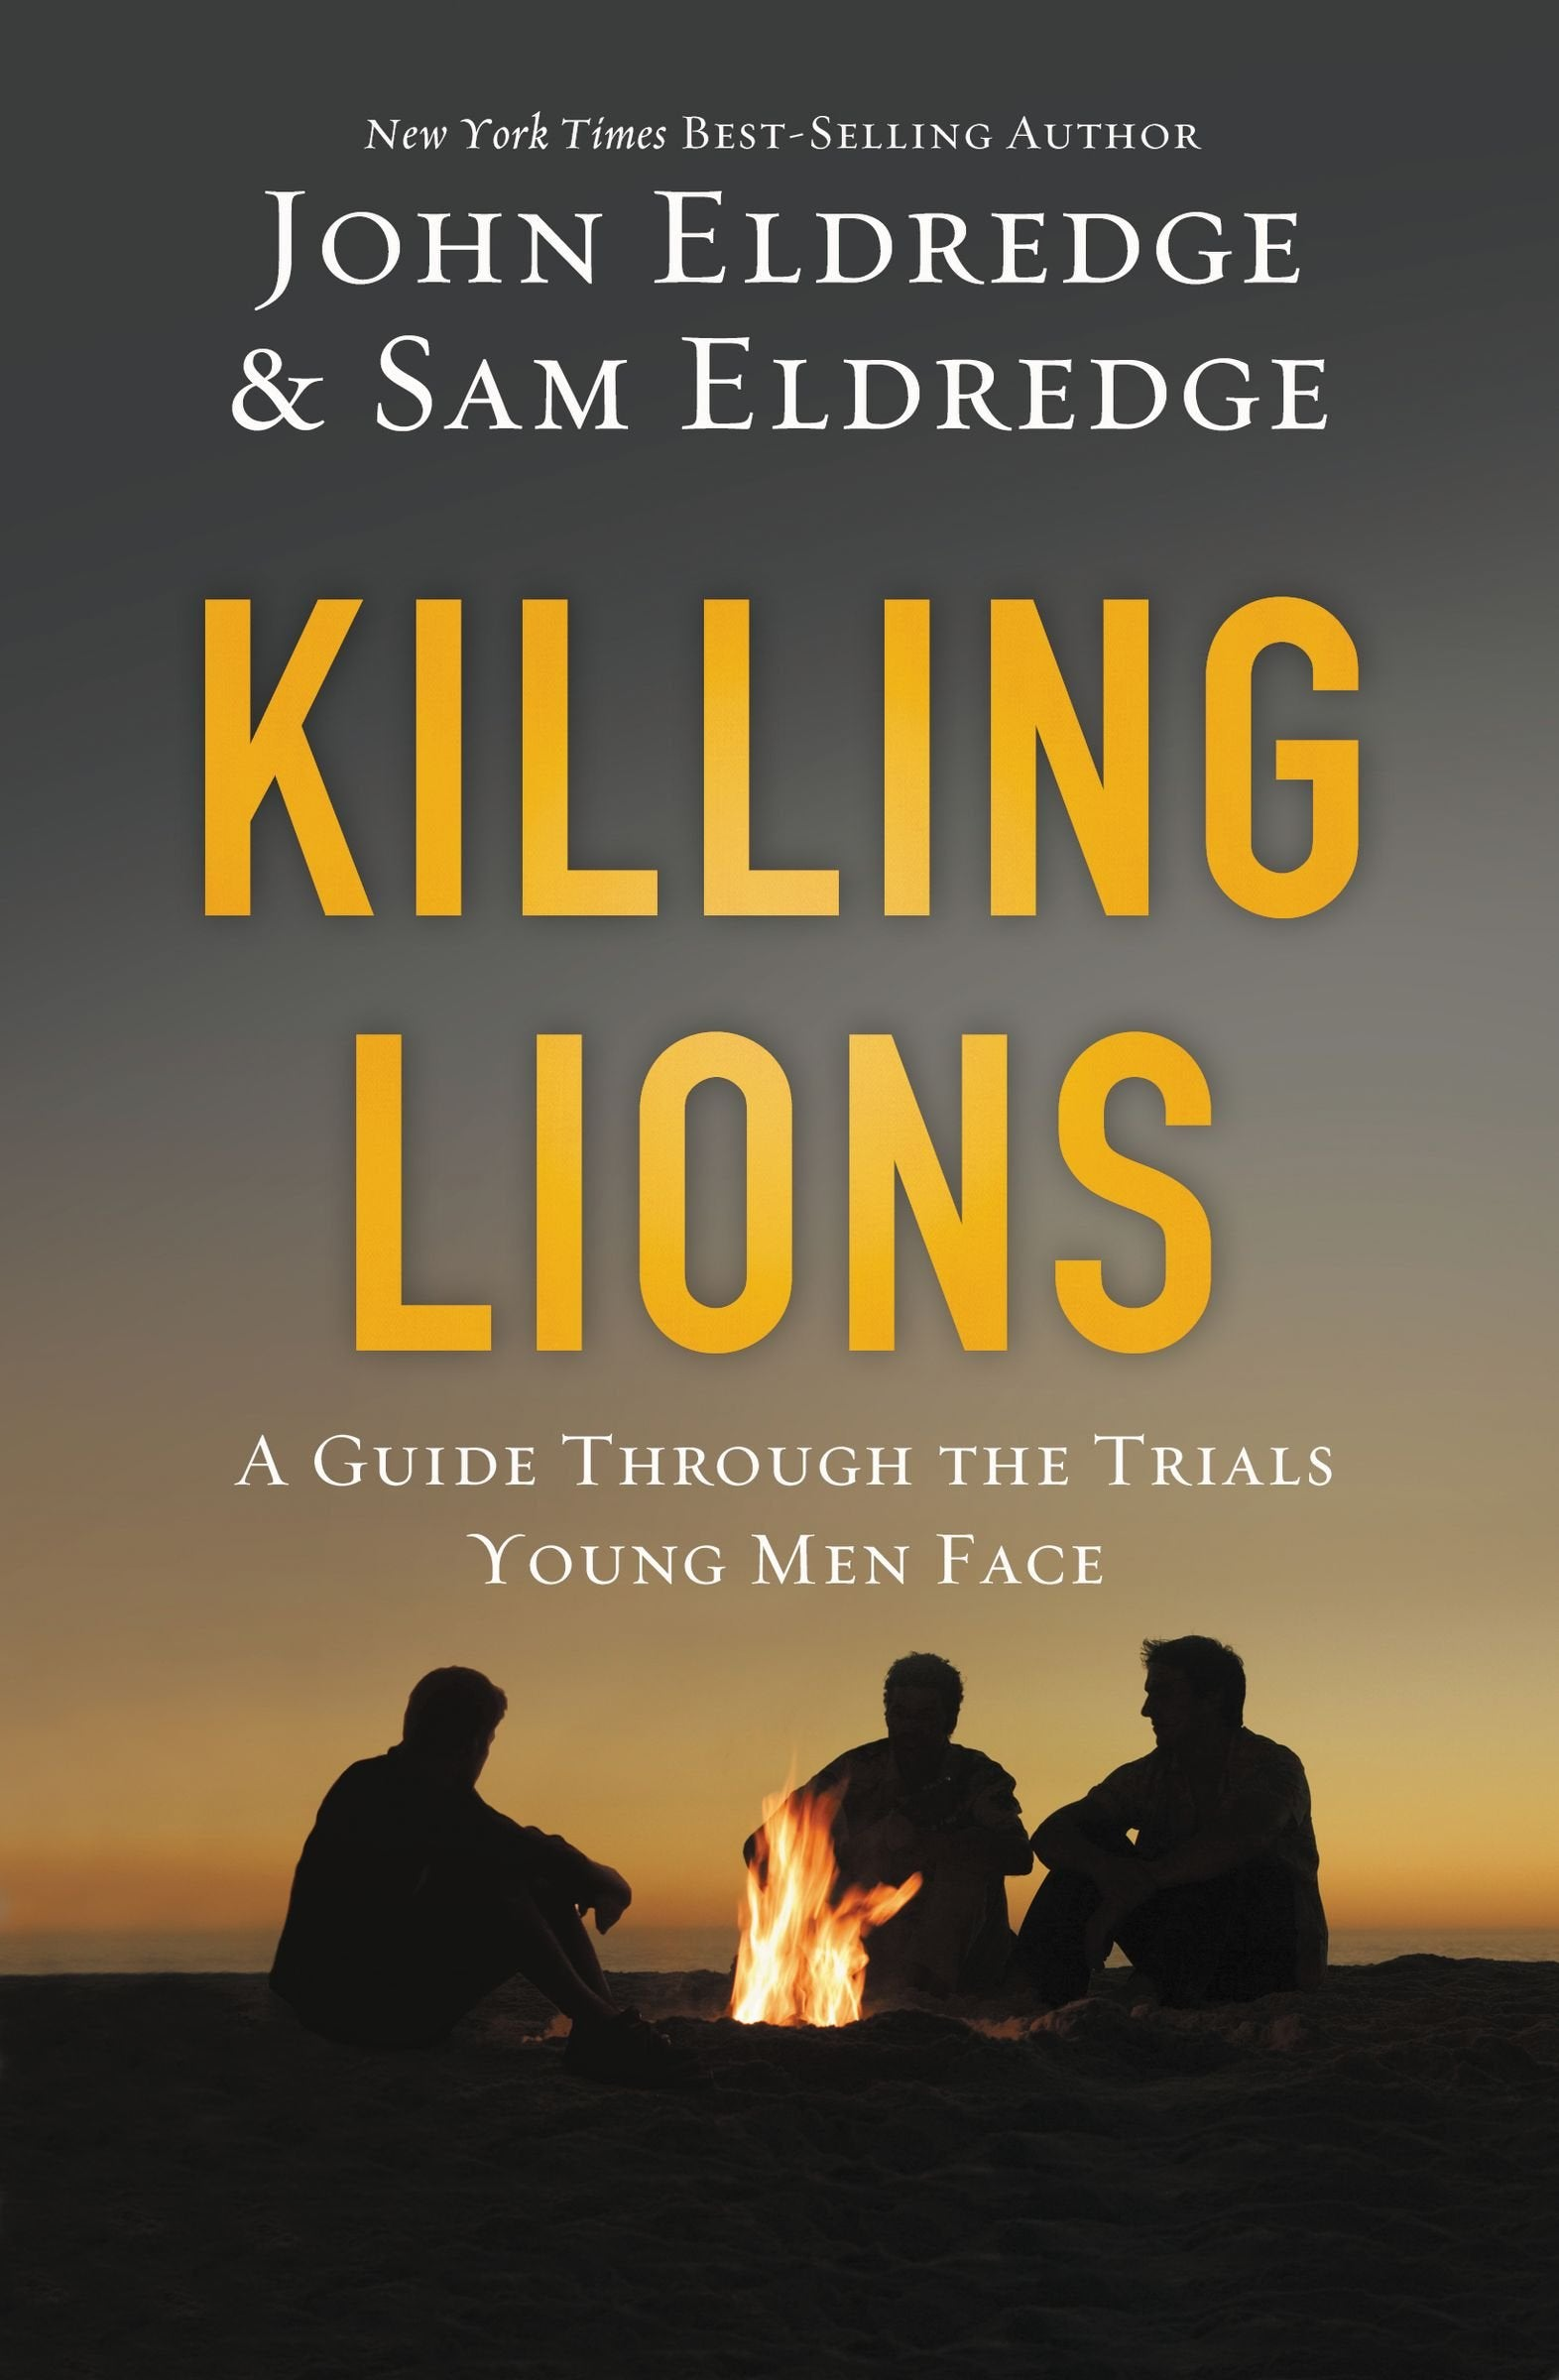 ROCKONLINE | New Creation Church | NCC | Joseph Prince | ROCK Bookshop | ROCK Bookstore | Star Vista | Killing Lions: A Guide Through the Trials Young Men Face | John Eldredge | Christian Men | Free delivery for Singapore Orders above $50.